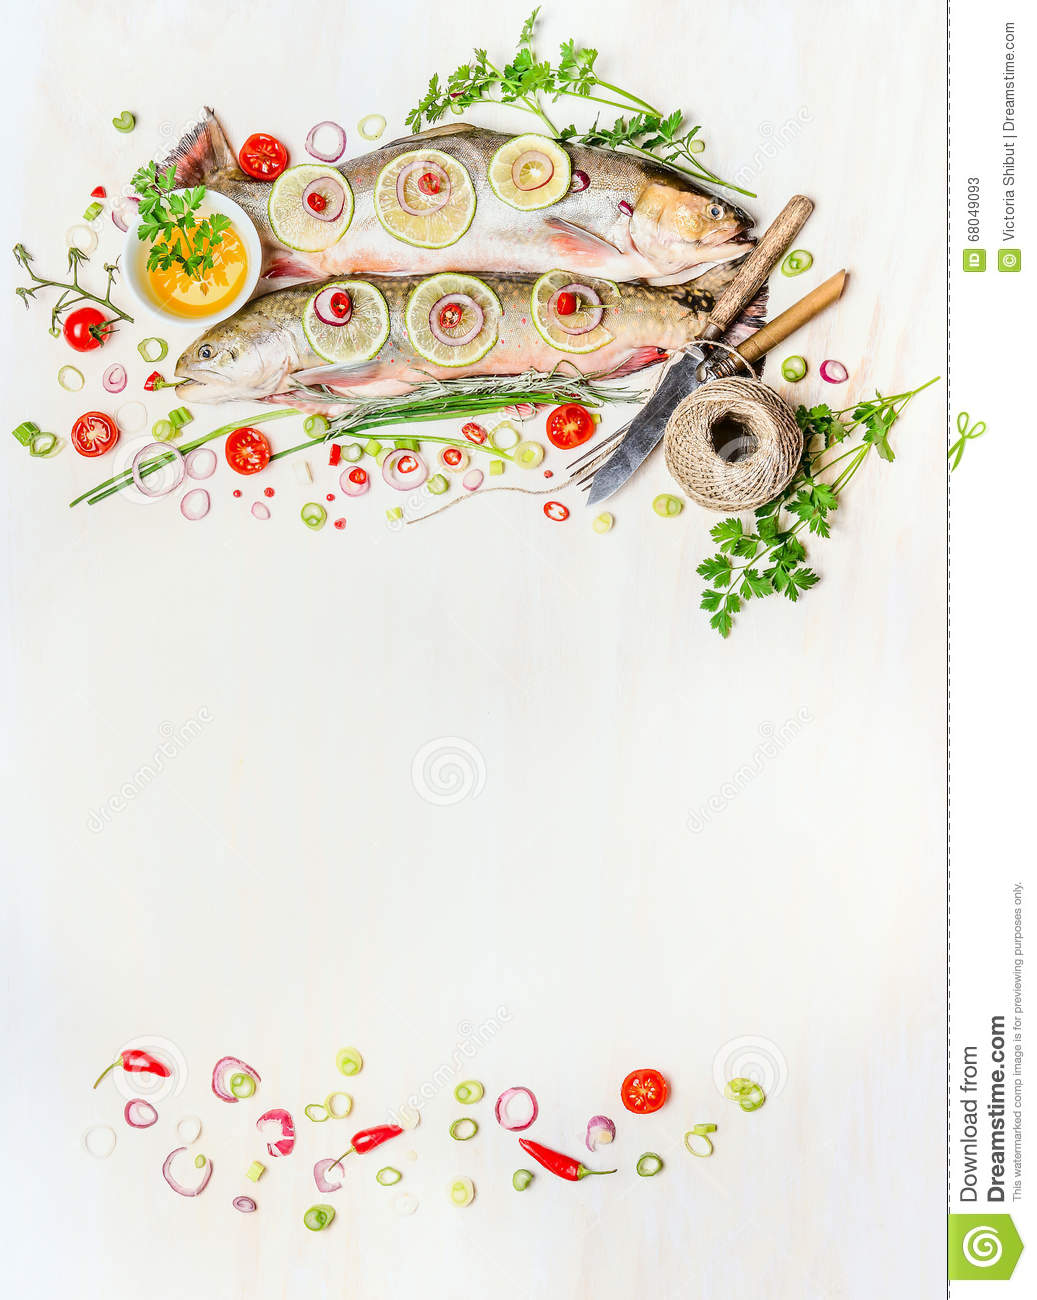 Fish food background with raw whole fish fresh delicious for Too cool fishing